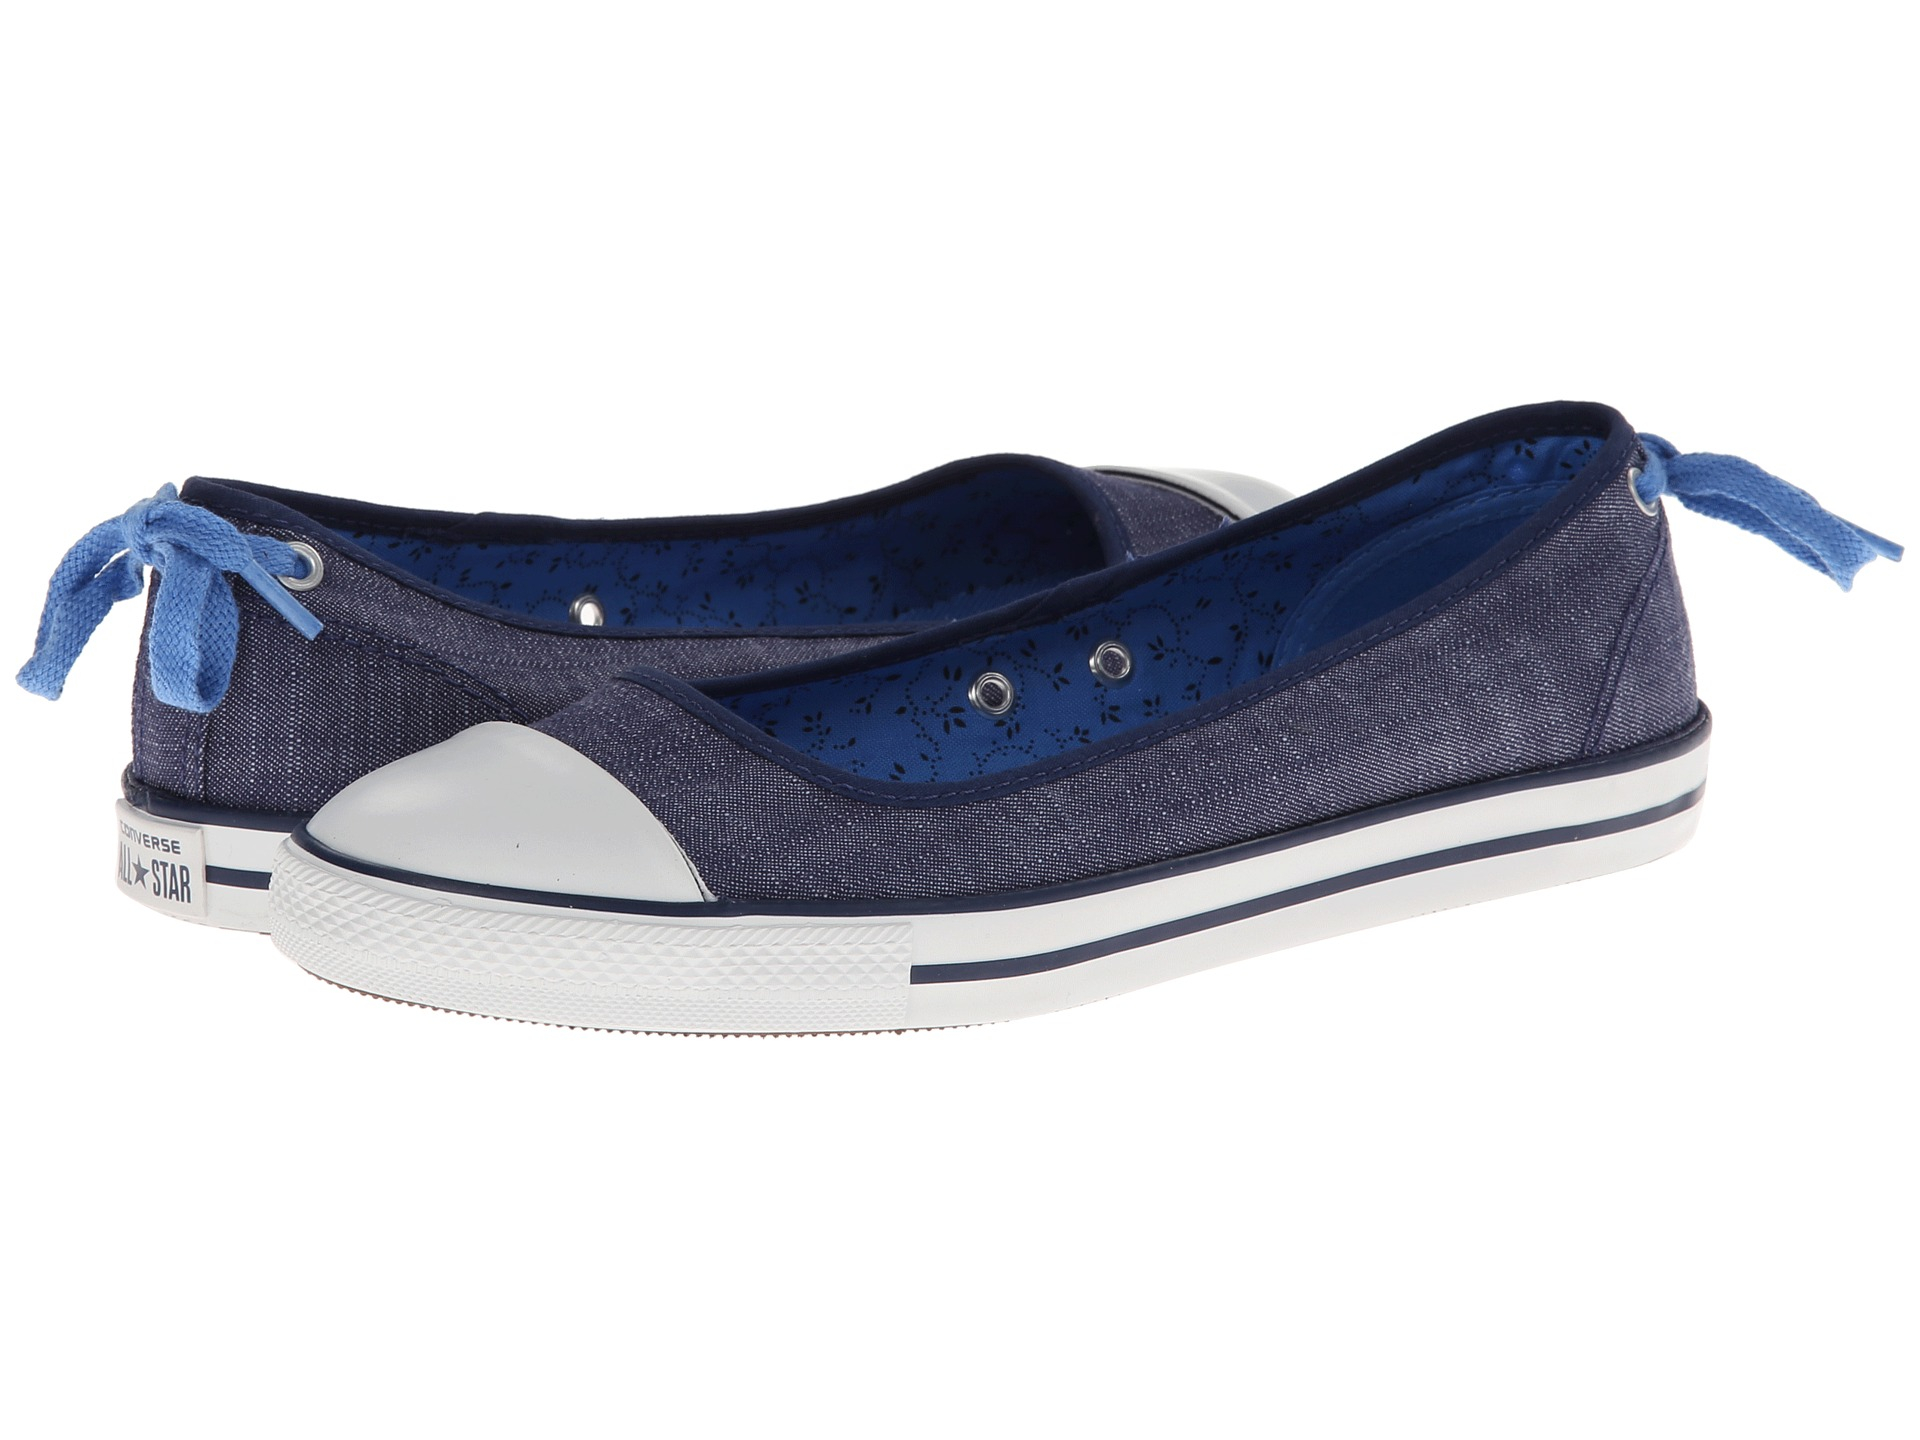 Lyst - Converse Chuck Taylor All Star Dainty Denim Ballerina Slipon ... ae8dc7354